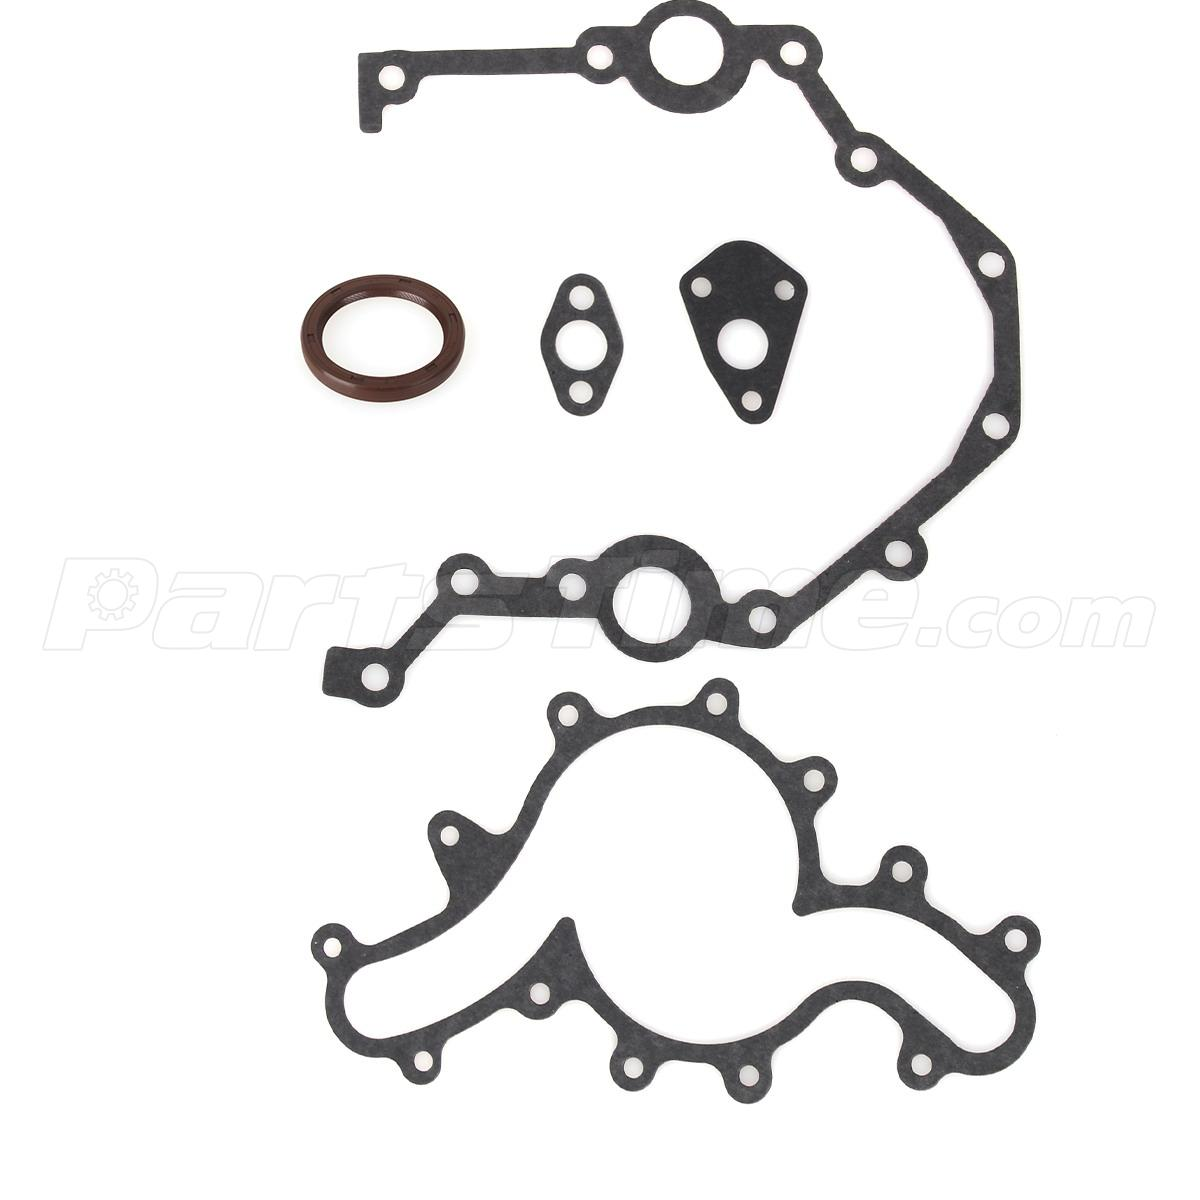 Service Manual 1997 Ford Explorer Timing Cover Gasket